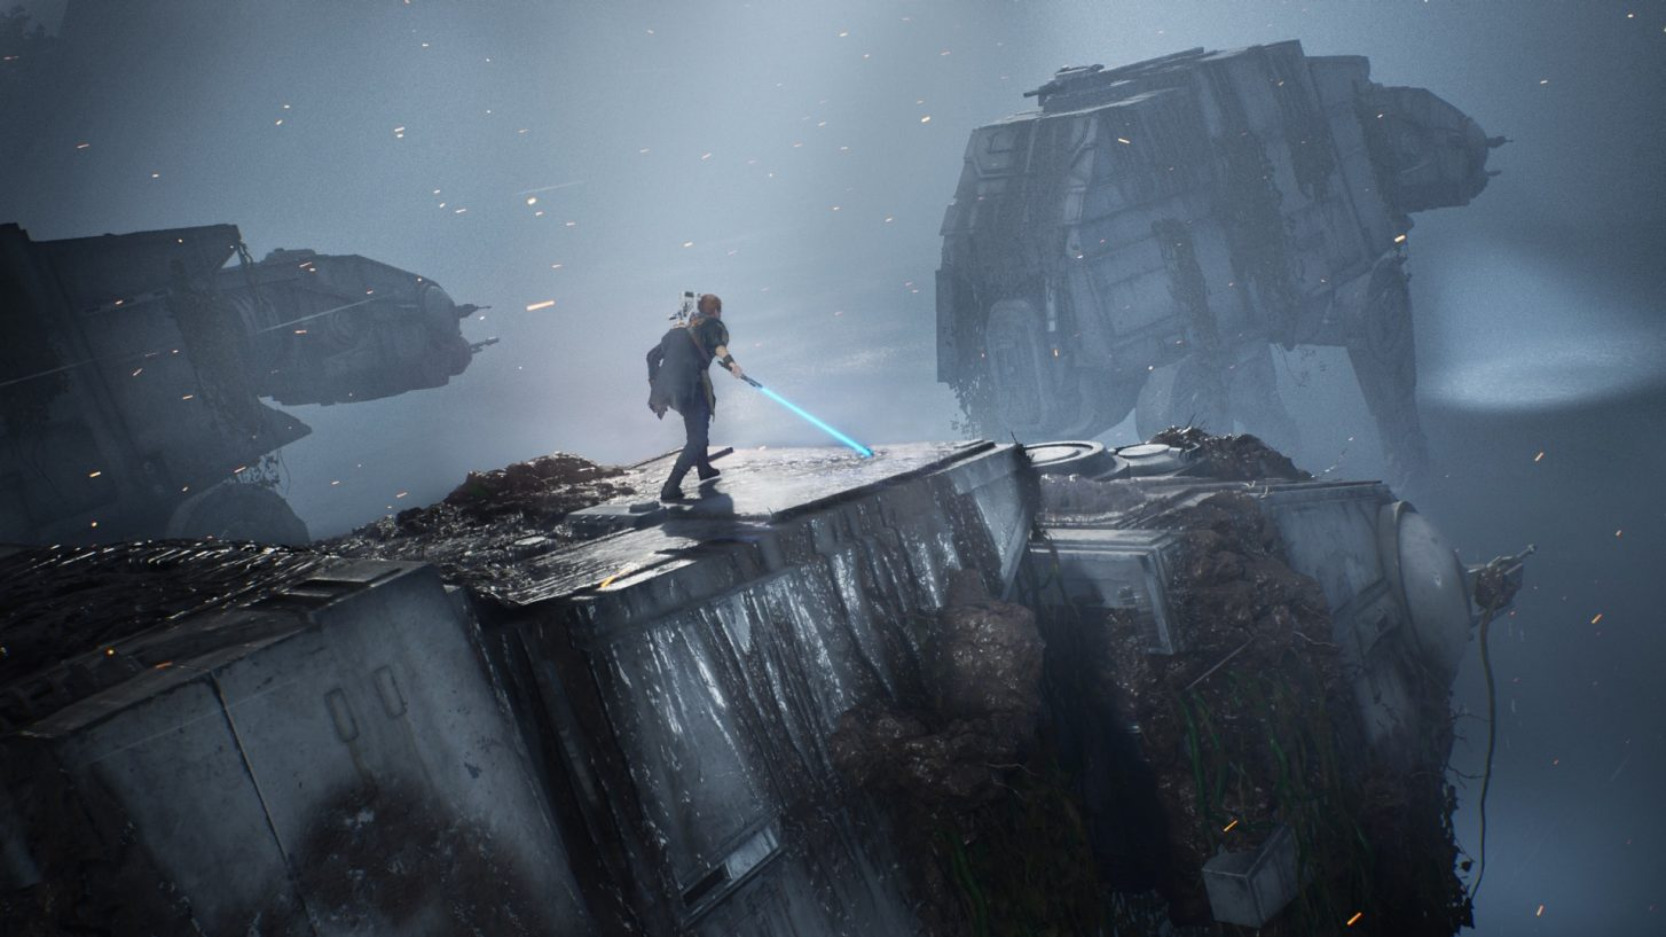 E3 2019: Star Wars Jedi - Fallen Order GAMEPLAY TRAILER